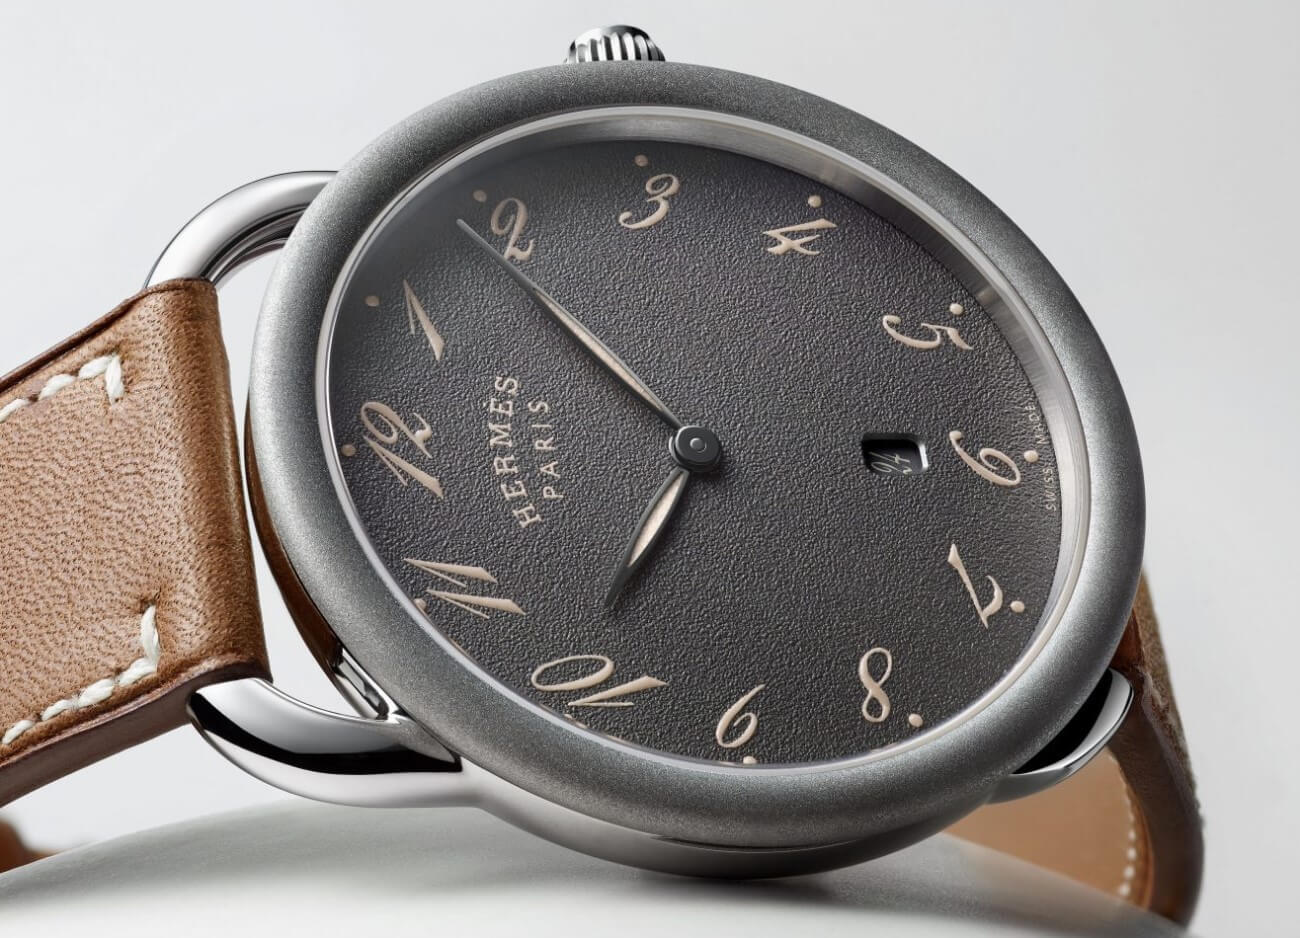 Hermès Arceau 78 Watch